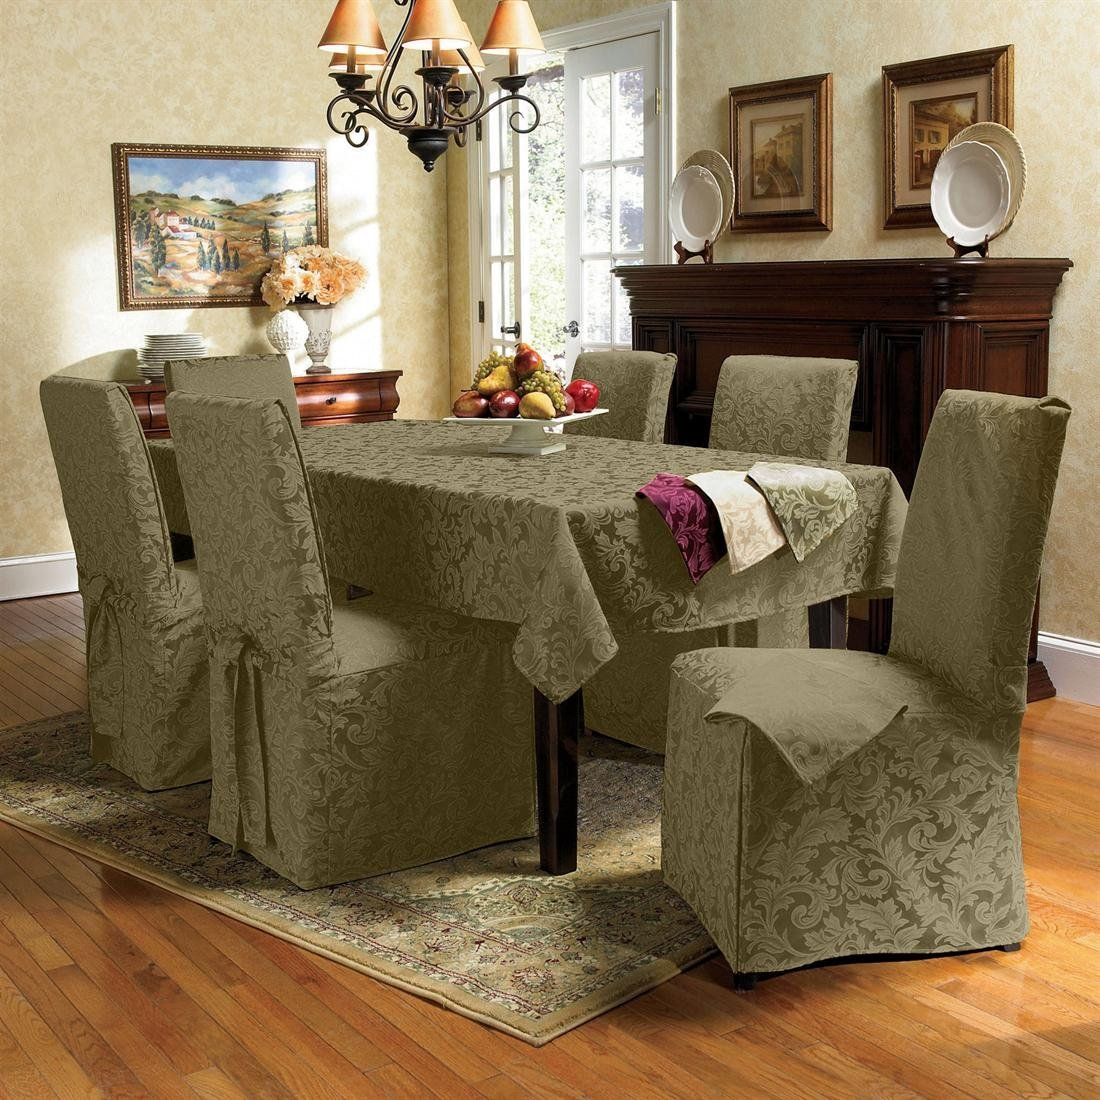 Picture of: Slipcovers For Chairs Royals Courage Create Your Eating Space Extra Engaging With A Dining Room Chair Covers